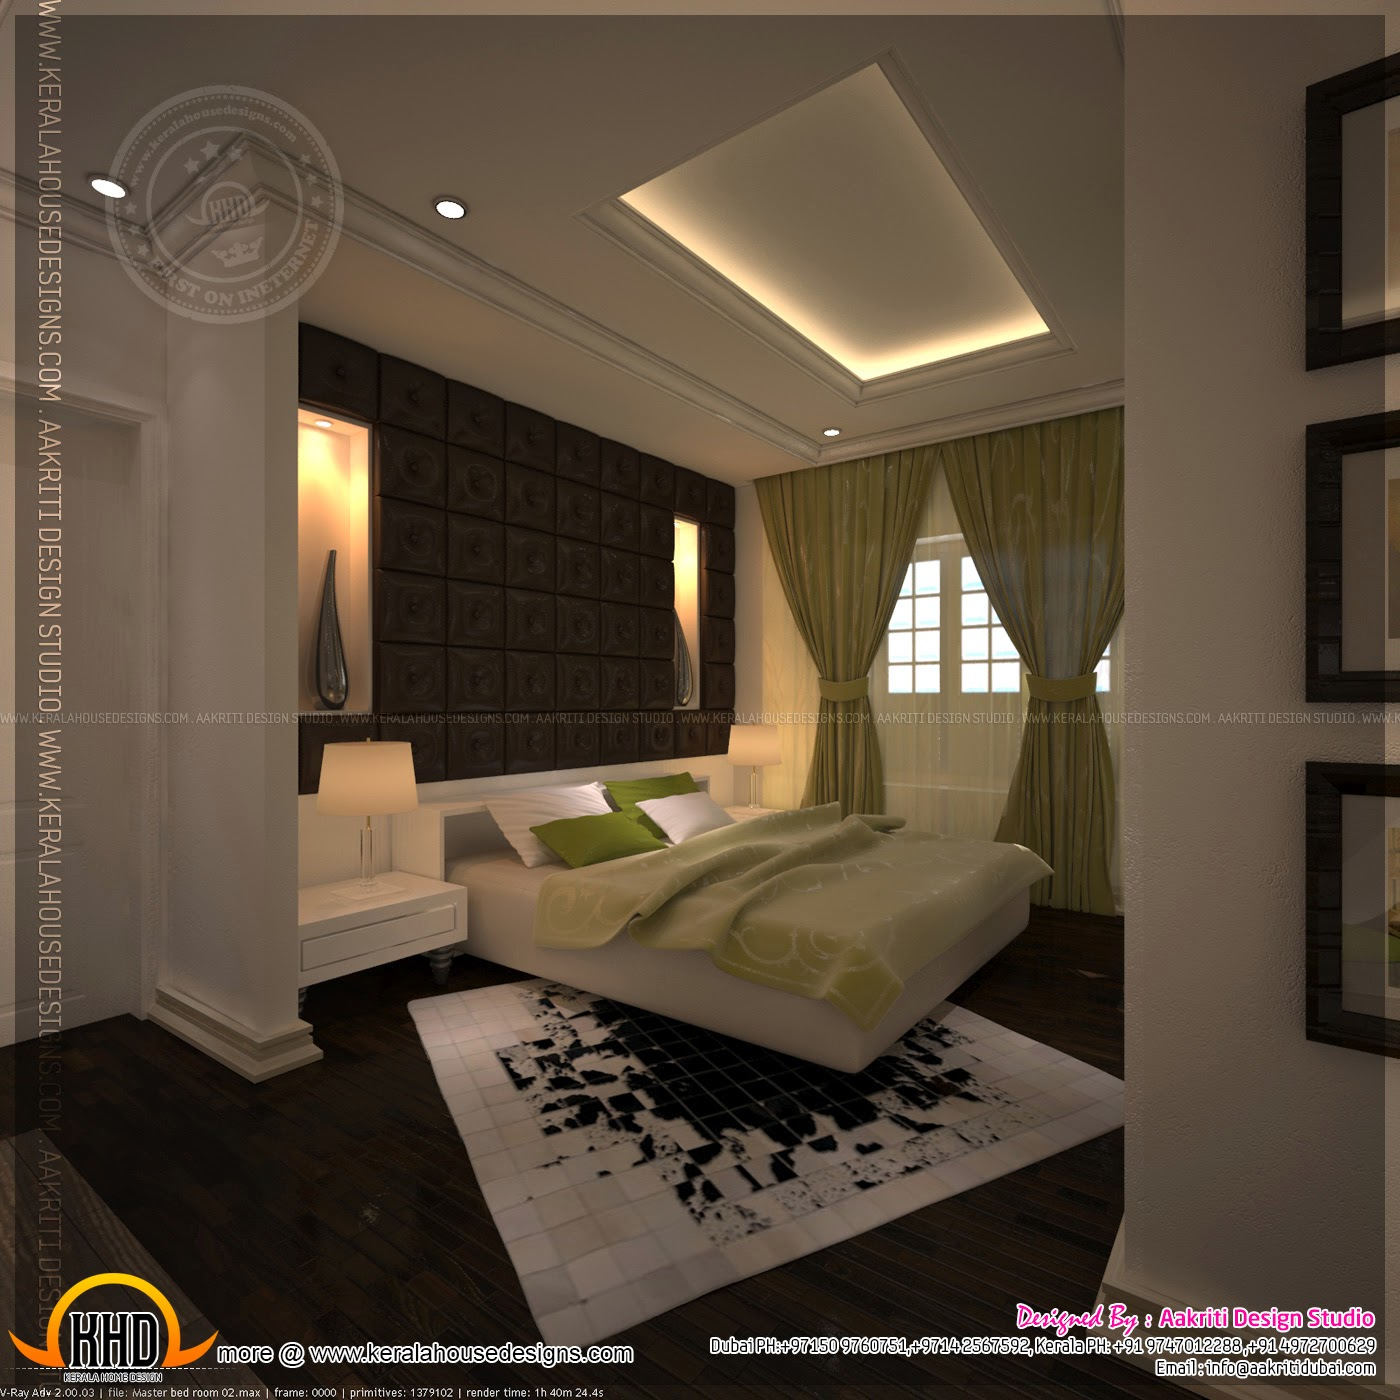 Master bedroom and bathroom interior design kerala home for Home interior bedroom